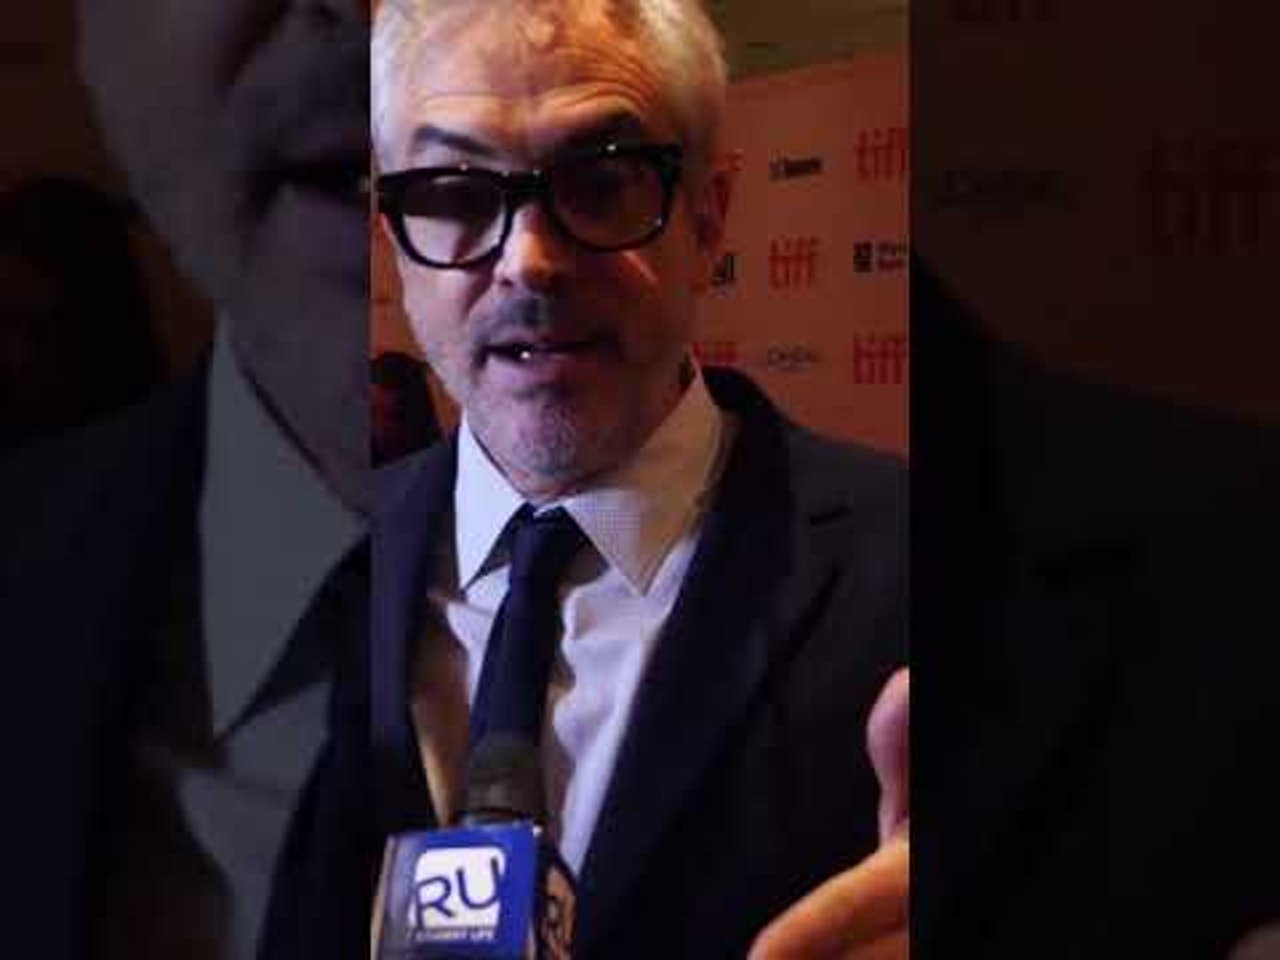 ALFONSO CUARON for ROMA at TIFF 2018 - IG TV Cut